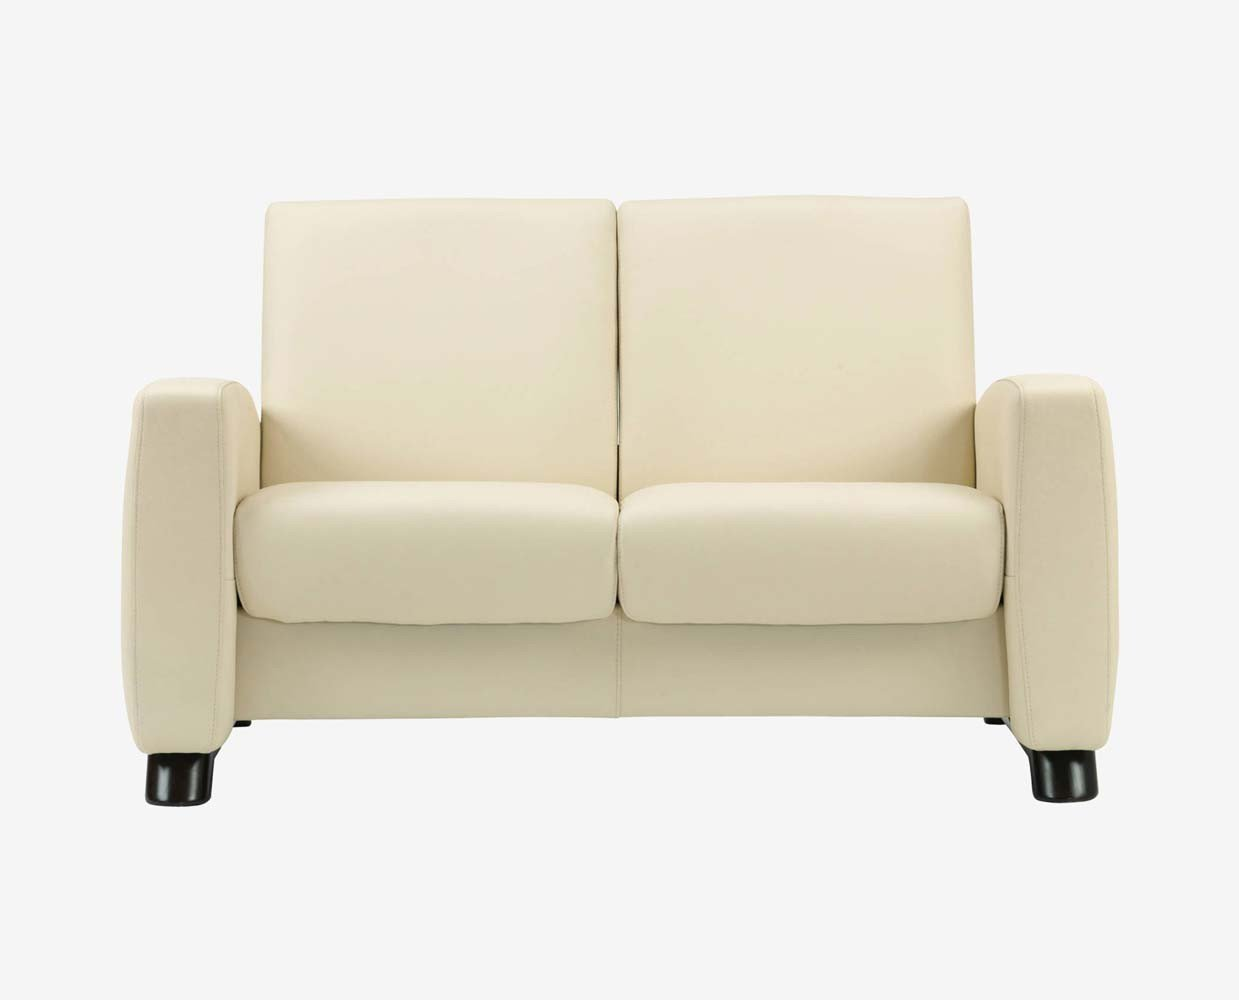 Stressless® Arion Low Back Loveseat - Scandinavian Designs